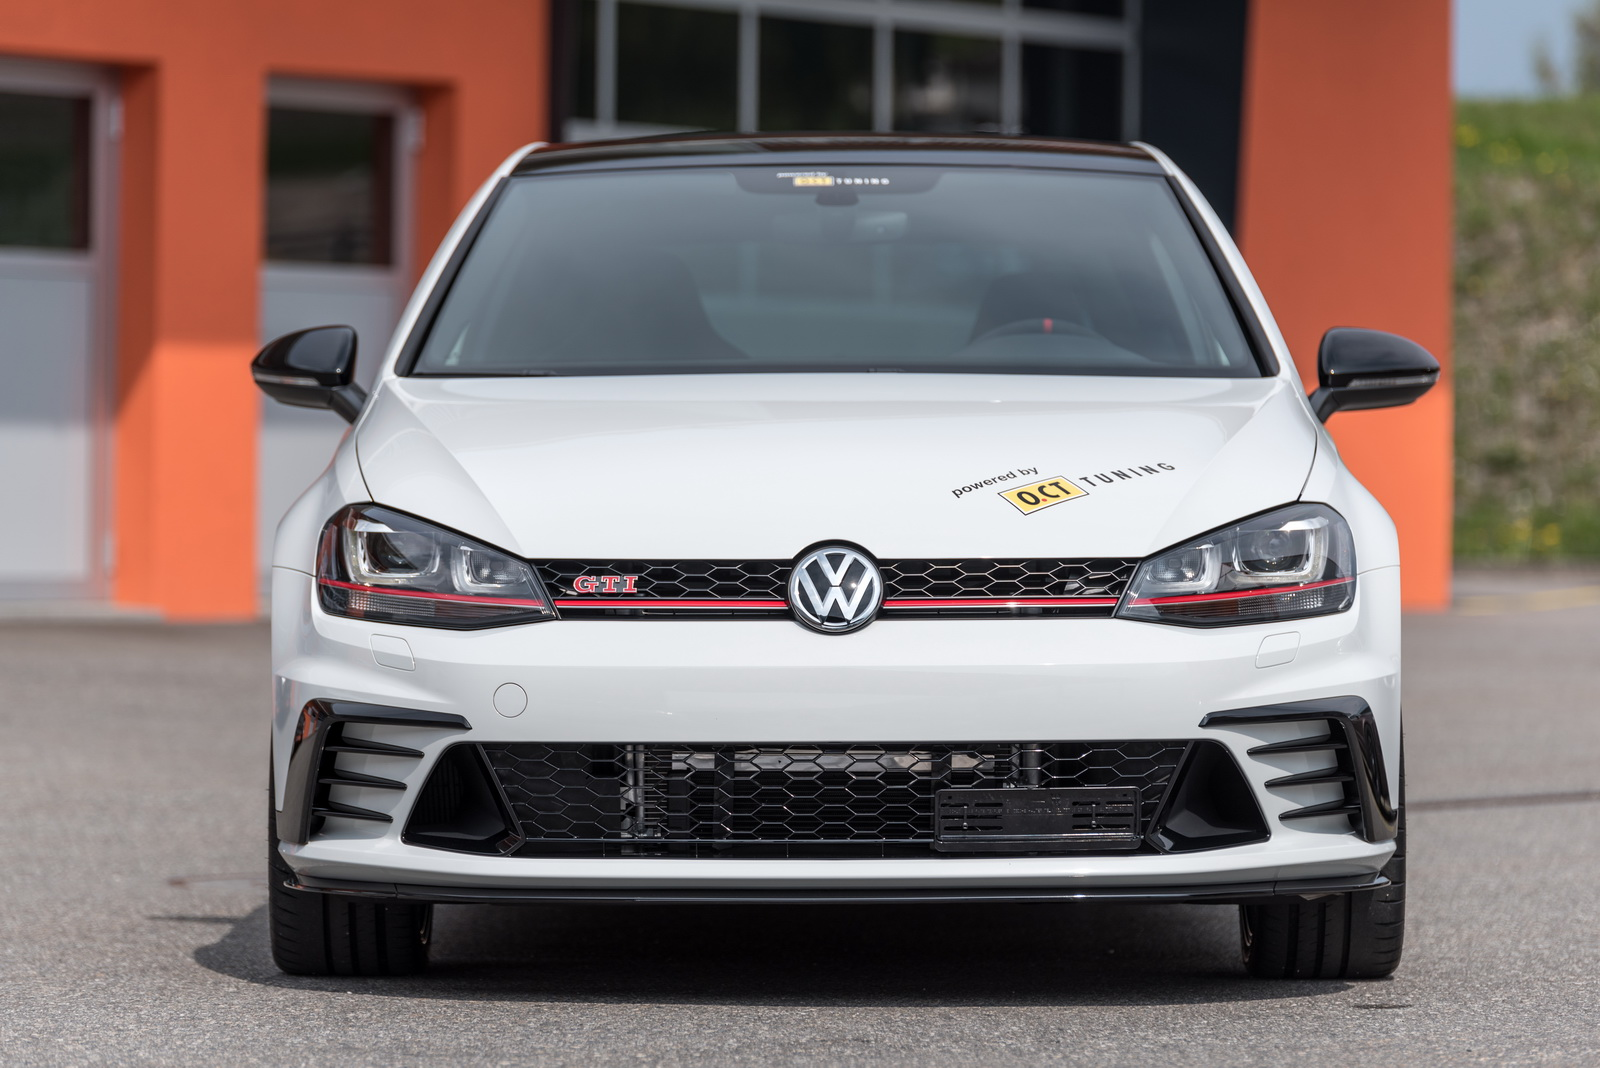 VW_Golf_GTI_Clubsport_S_by)O.CT_Tuning_06